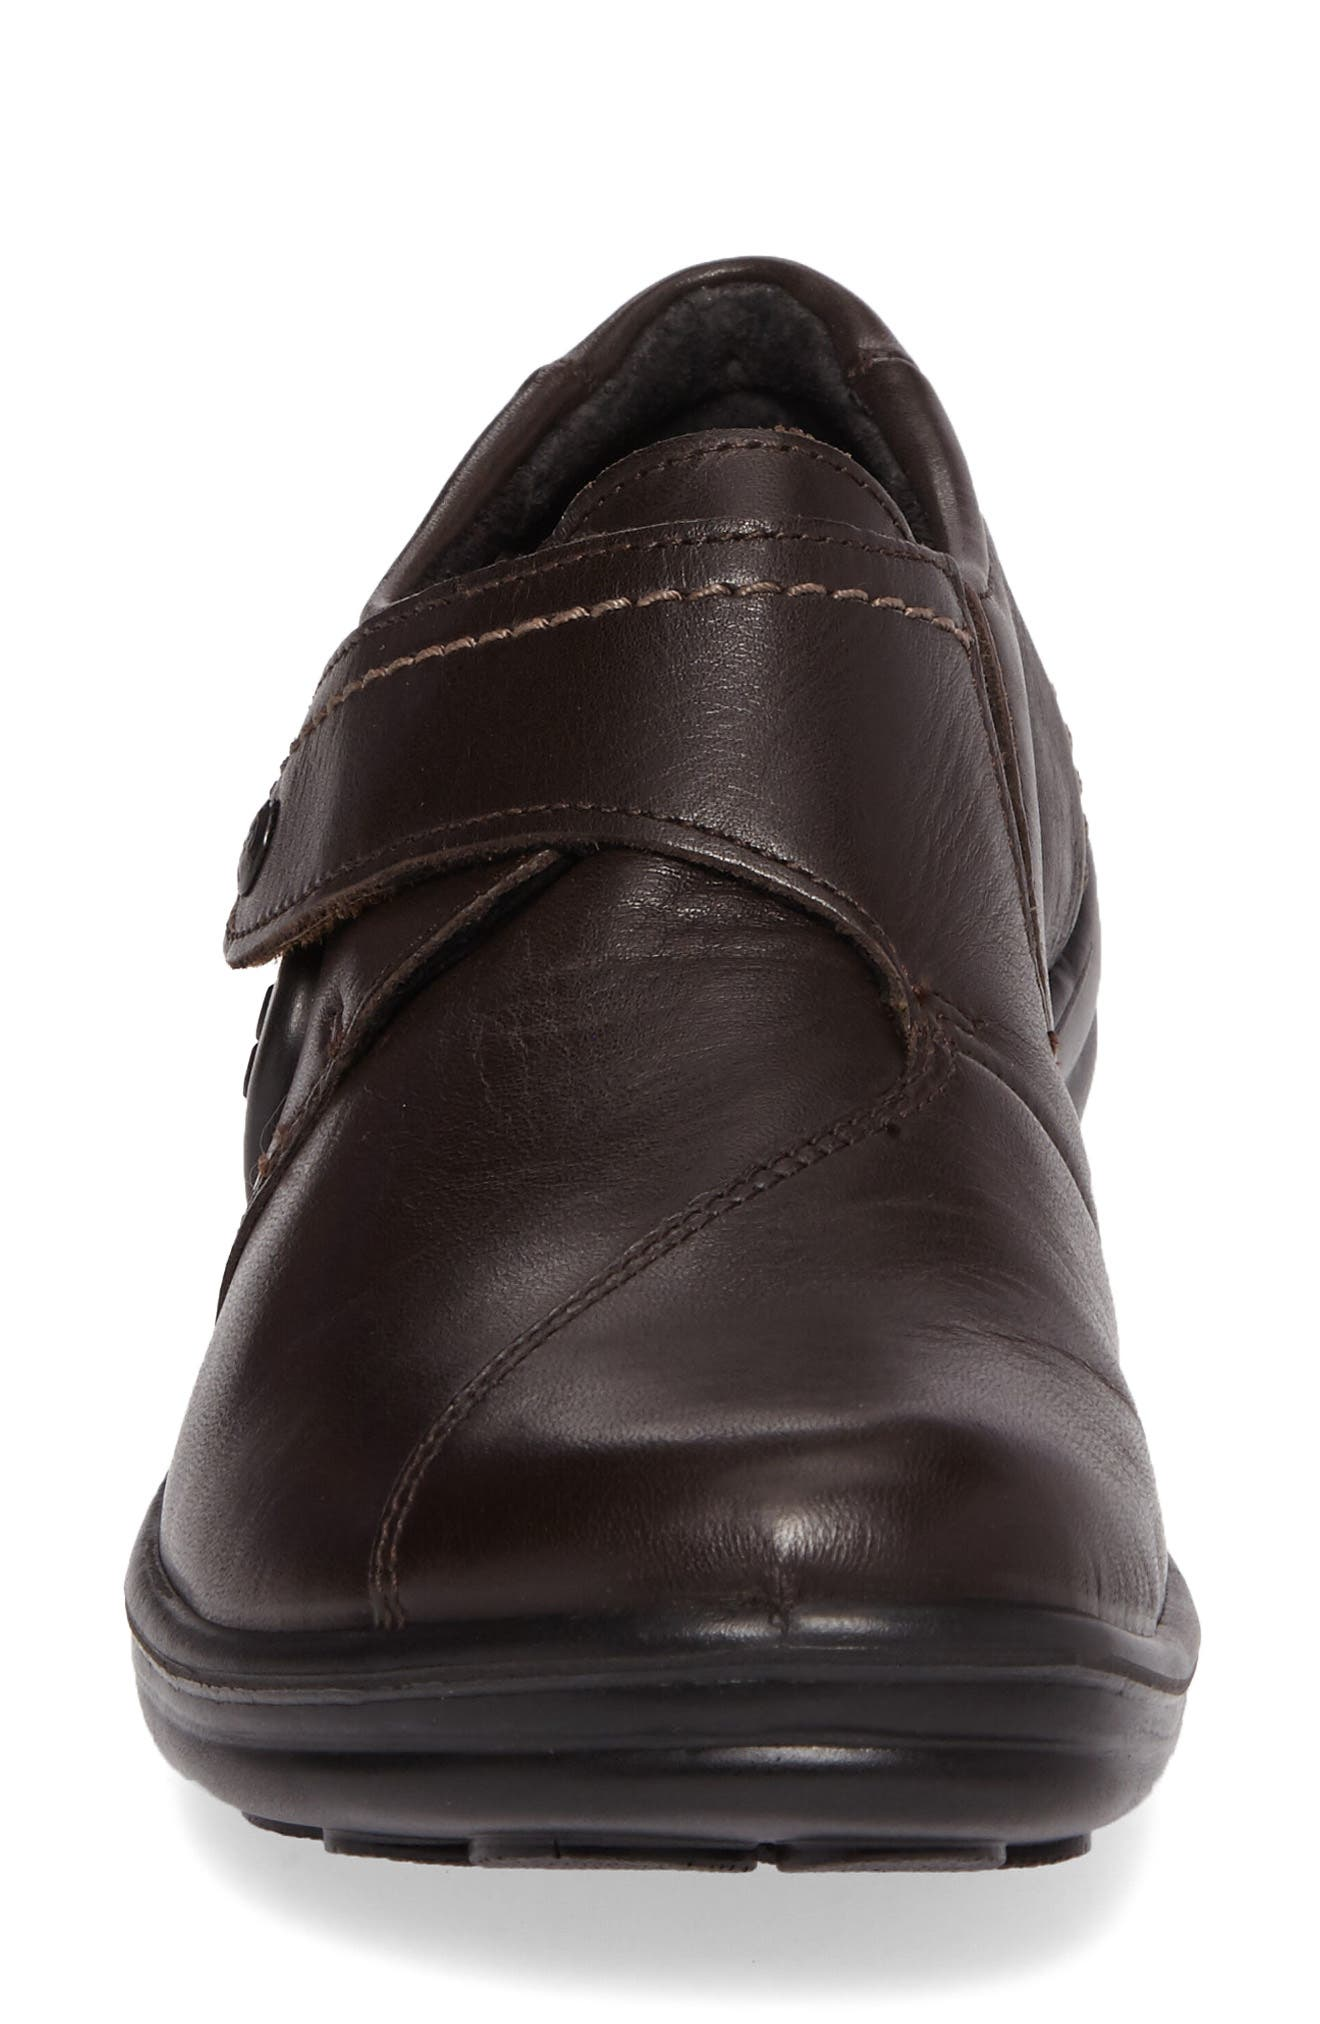 'Maddy 04' Slip-On Flat,                             Alternate thumbnail 4, color,                             Moro Leather